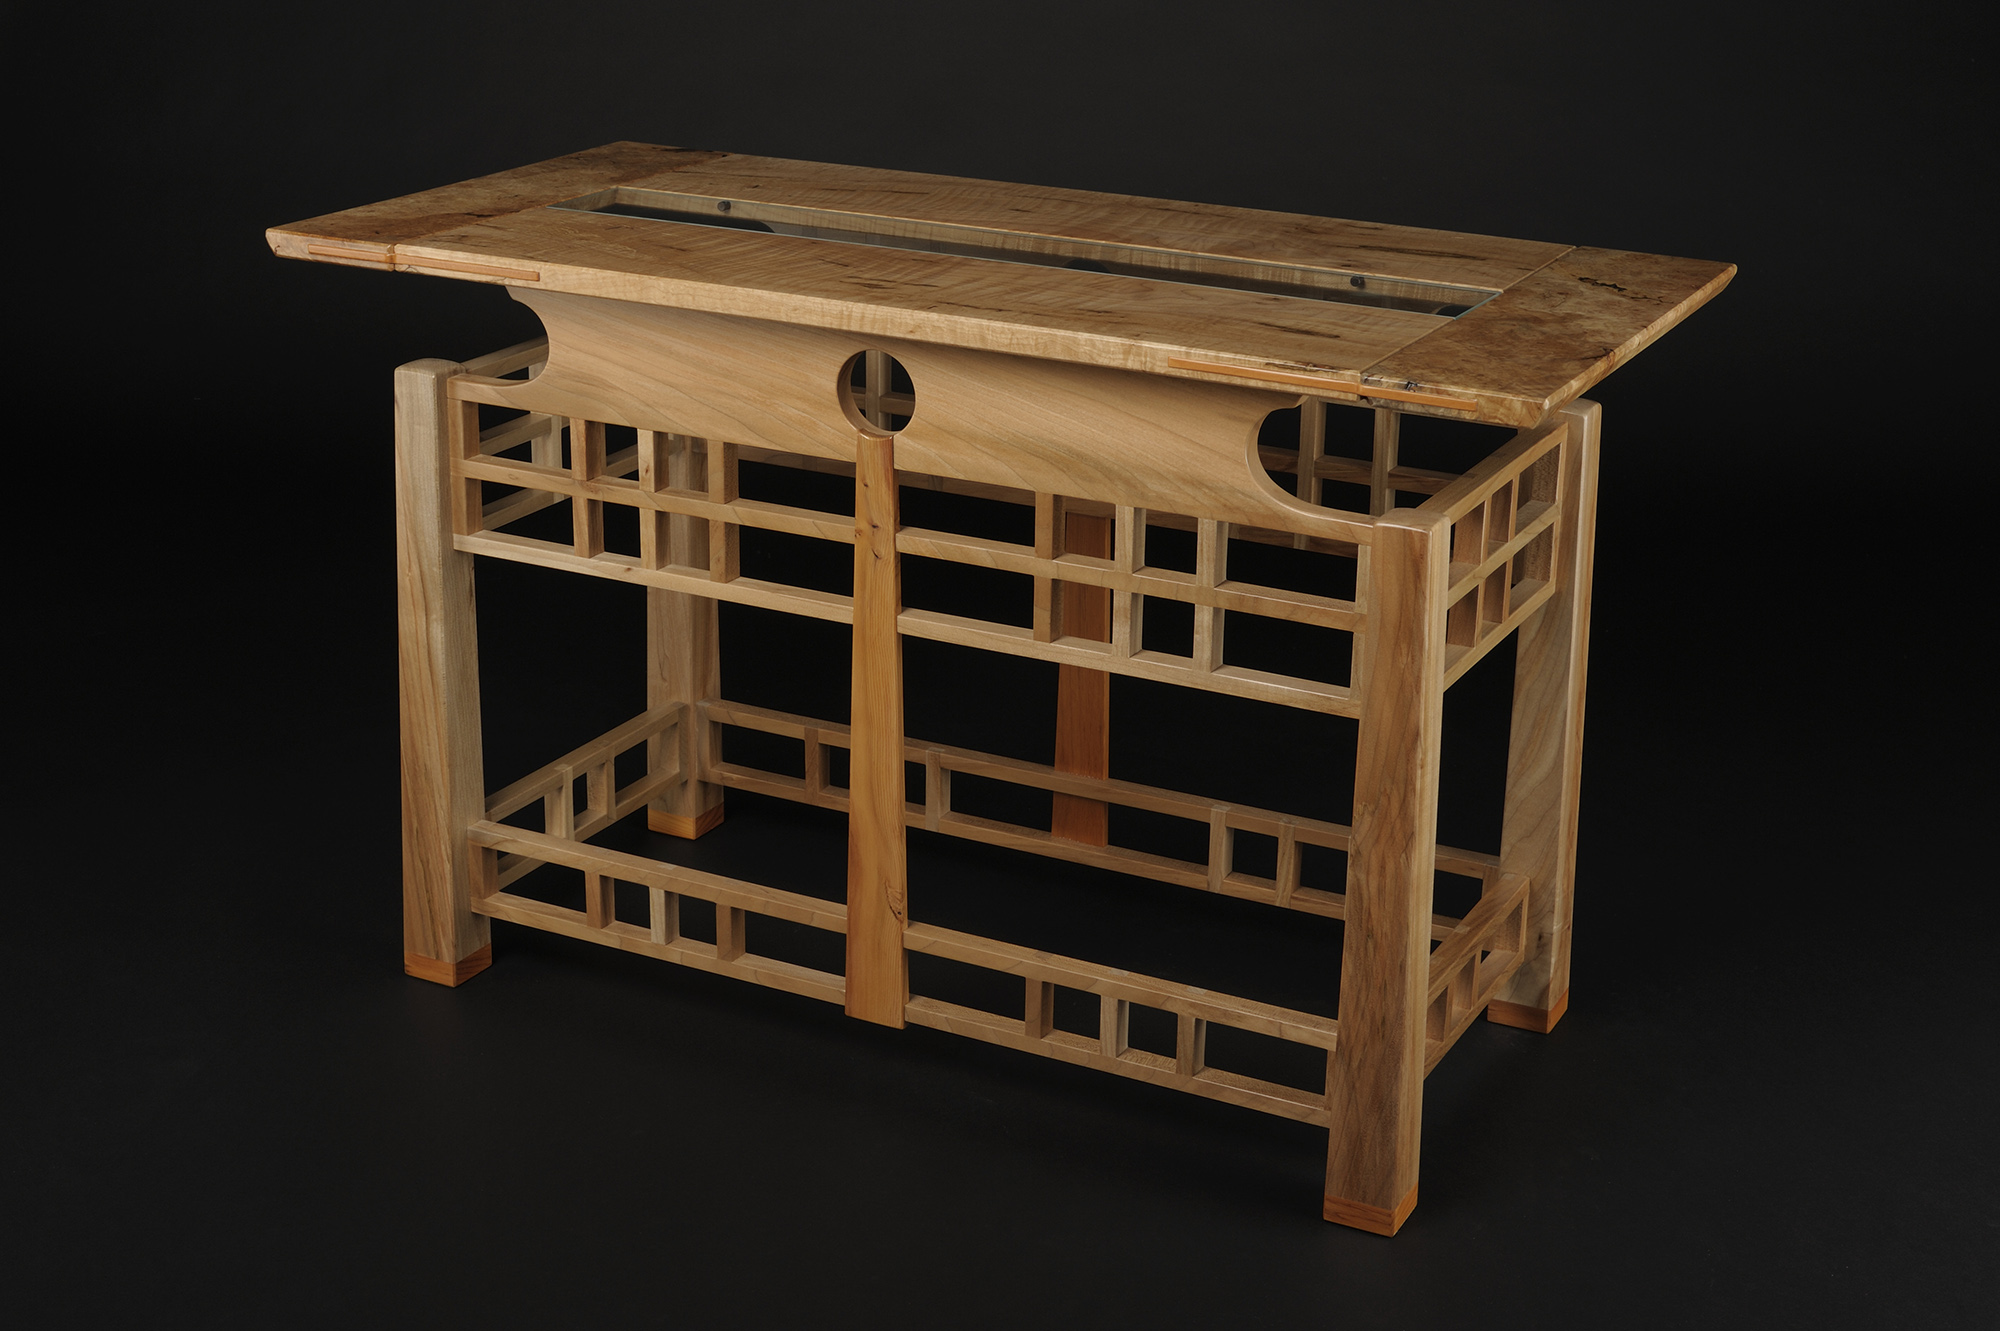 Handcrafted Furniture Photo Gallery Saratoga Woodworks Craftsman Style Inspired Furniture